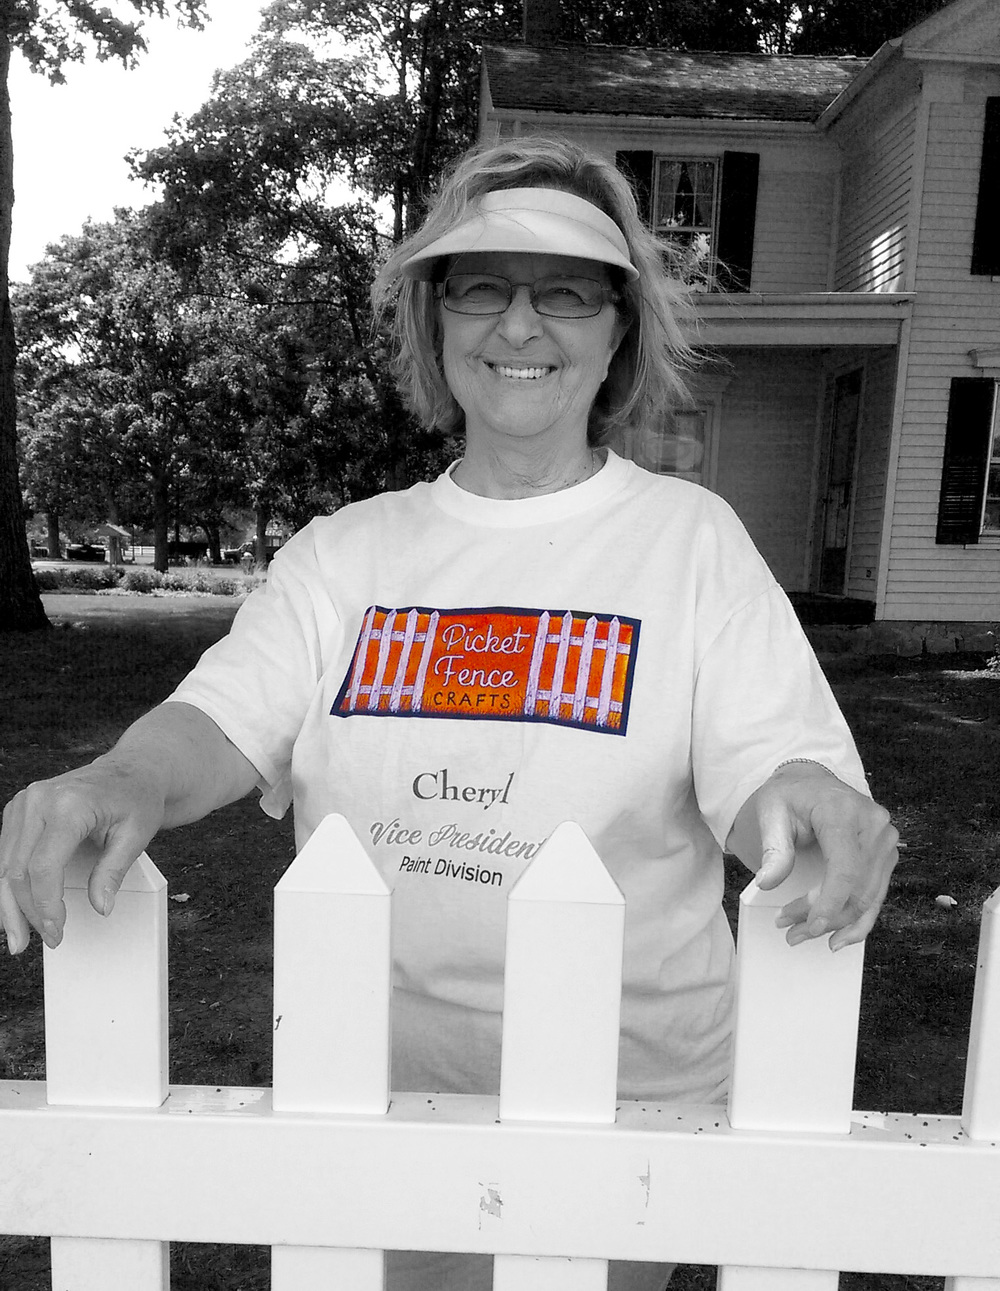 This is my sister, Cheryl.  She handles all the painting that is required for my numerous crafts.  She can paint a salt-dough dog bone lickety-split.  She is a major help for the Picket Fence Crafts endeavor, and she is exceptional in her work and work ethic.